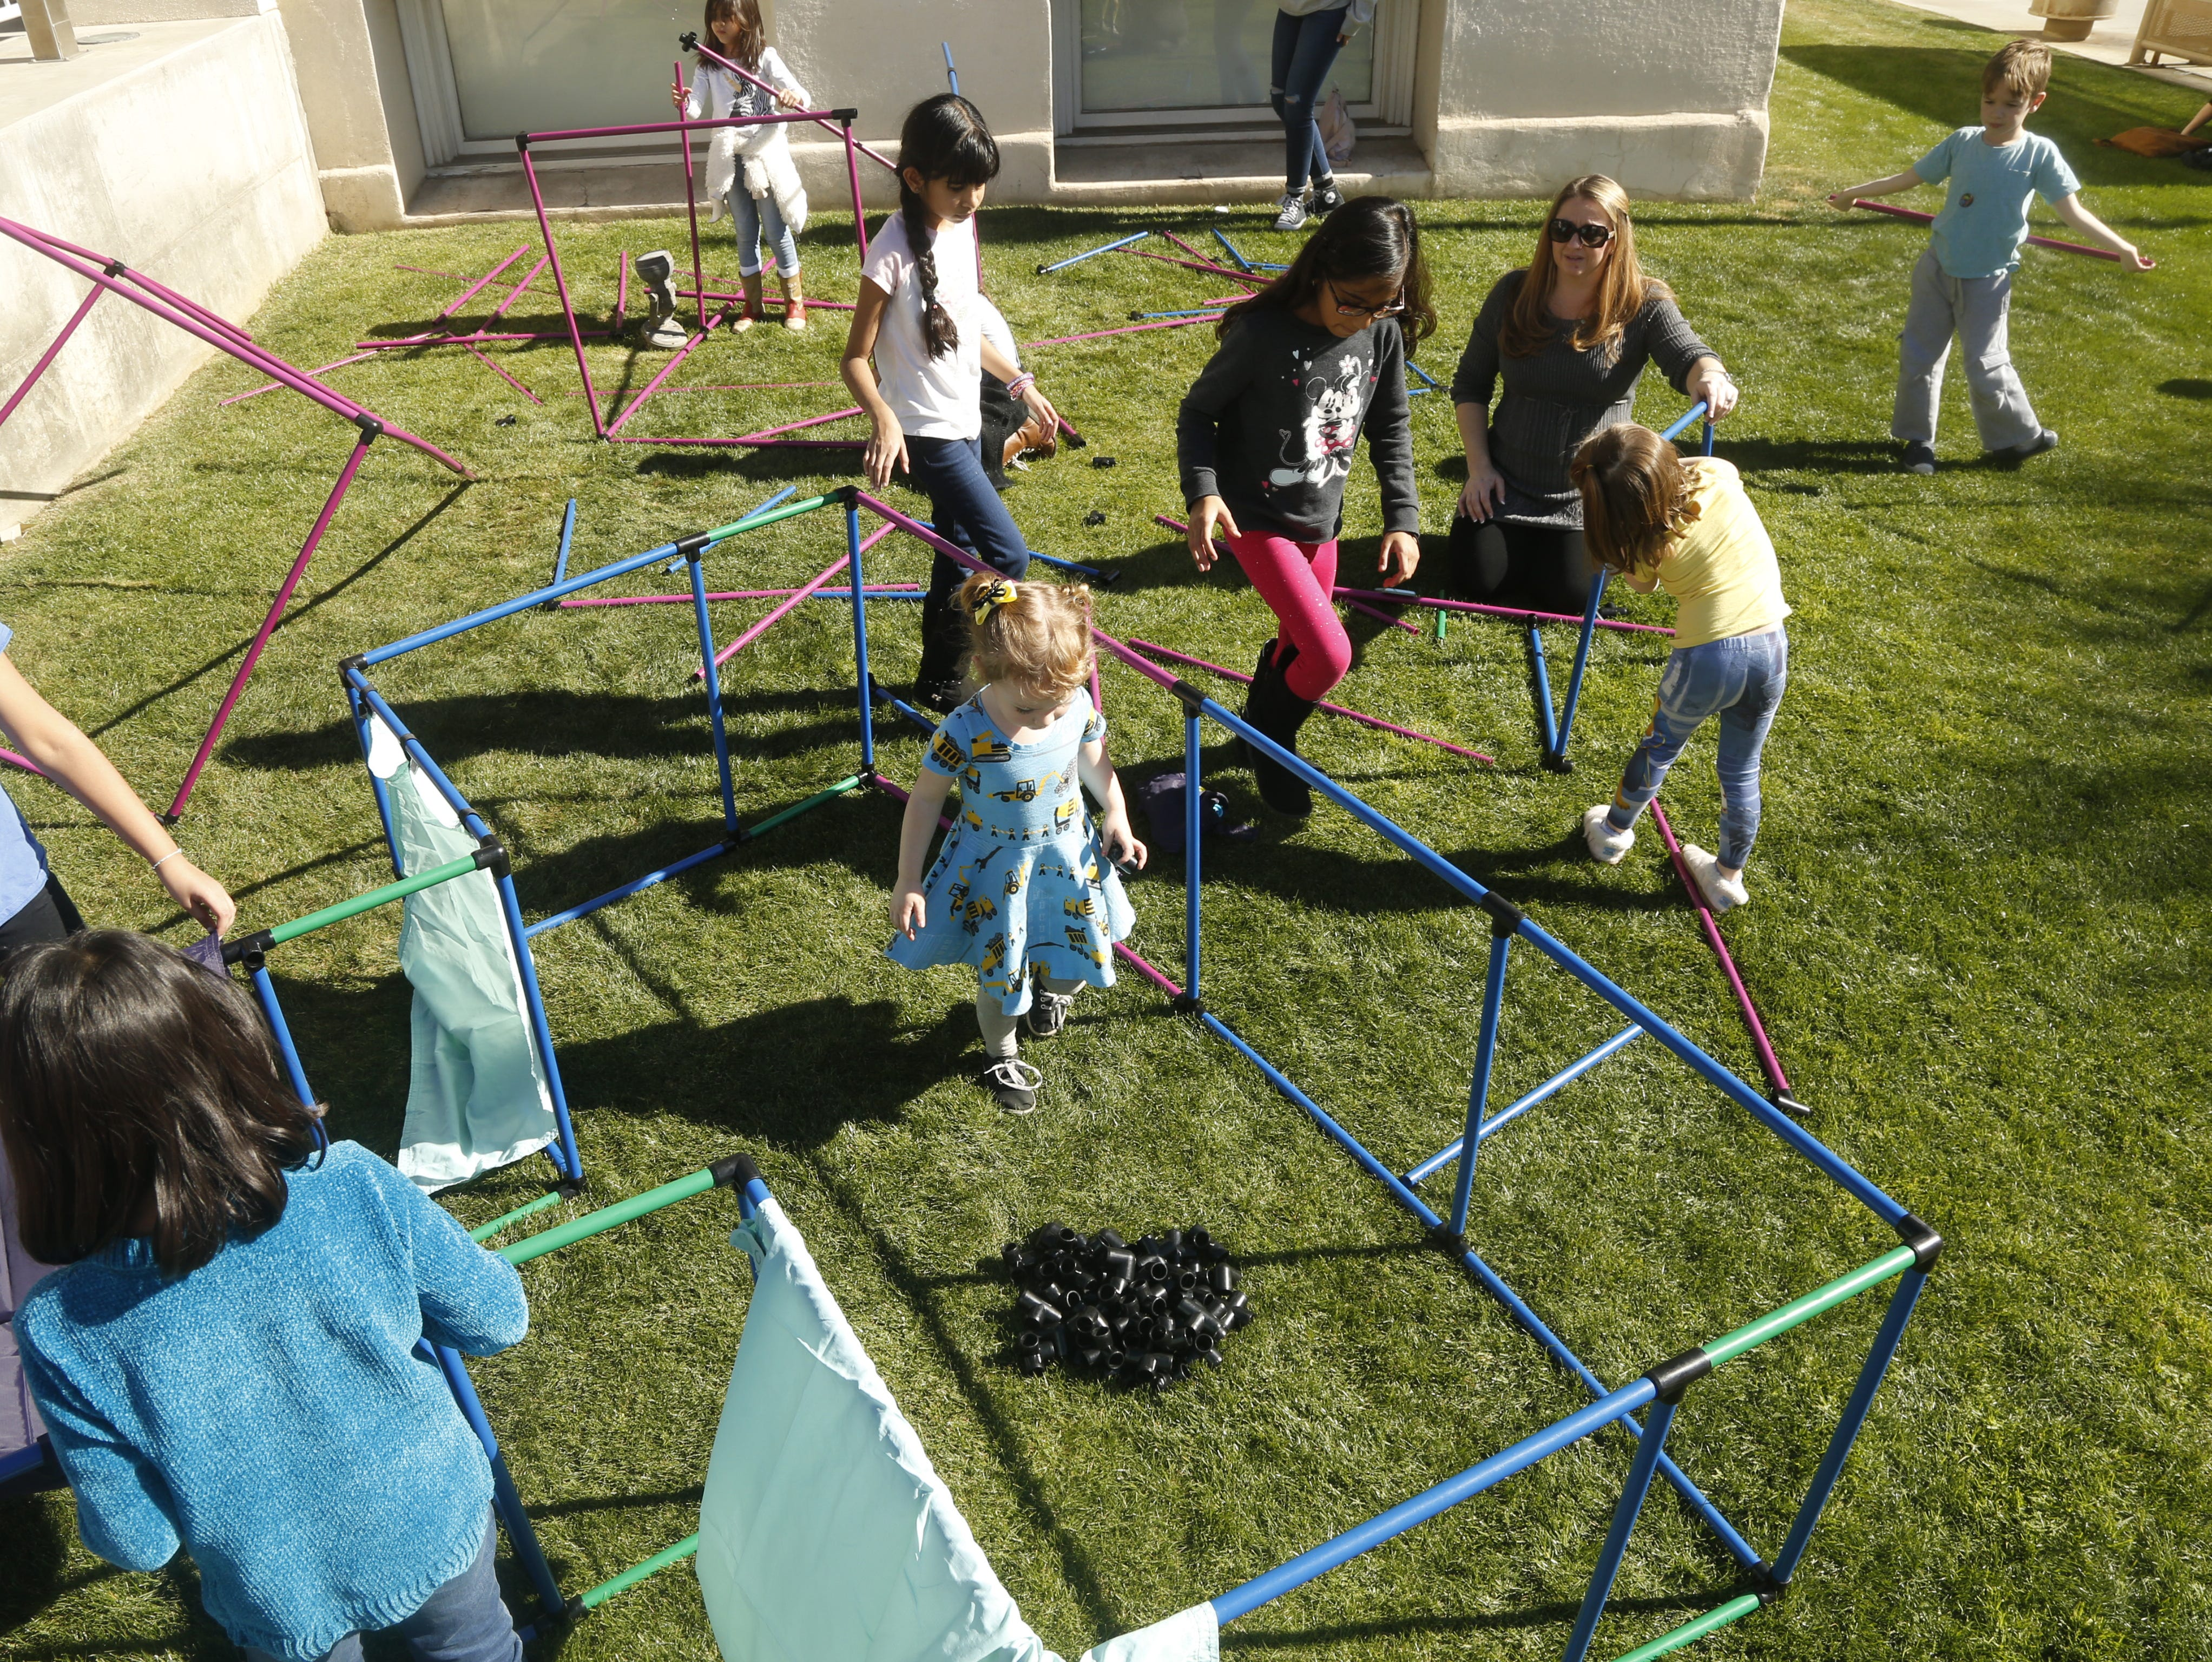 Children construct their own worlds with pieces and joints during a STEM outreach event in downtown Phoenix, Ariz. on January 26, 2019.